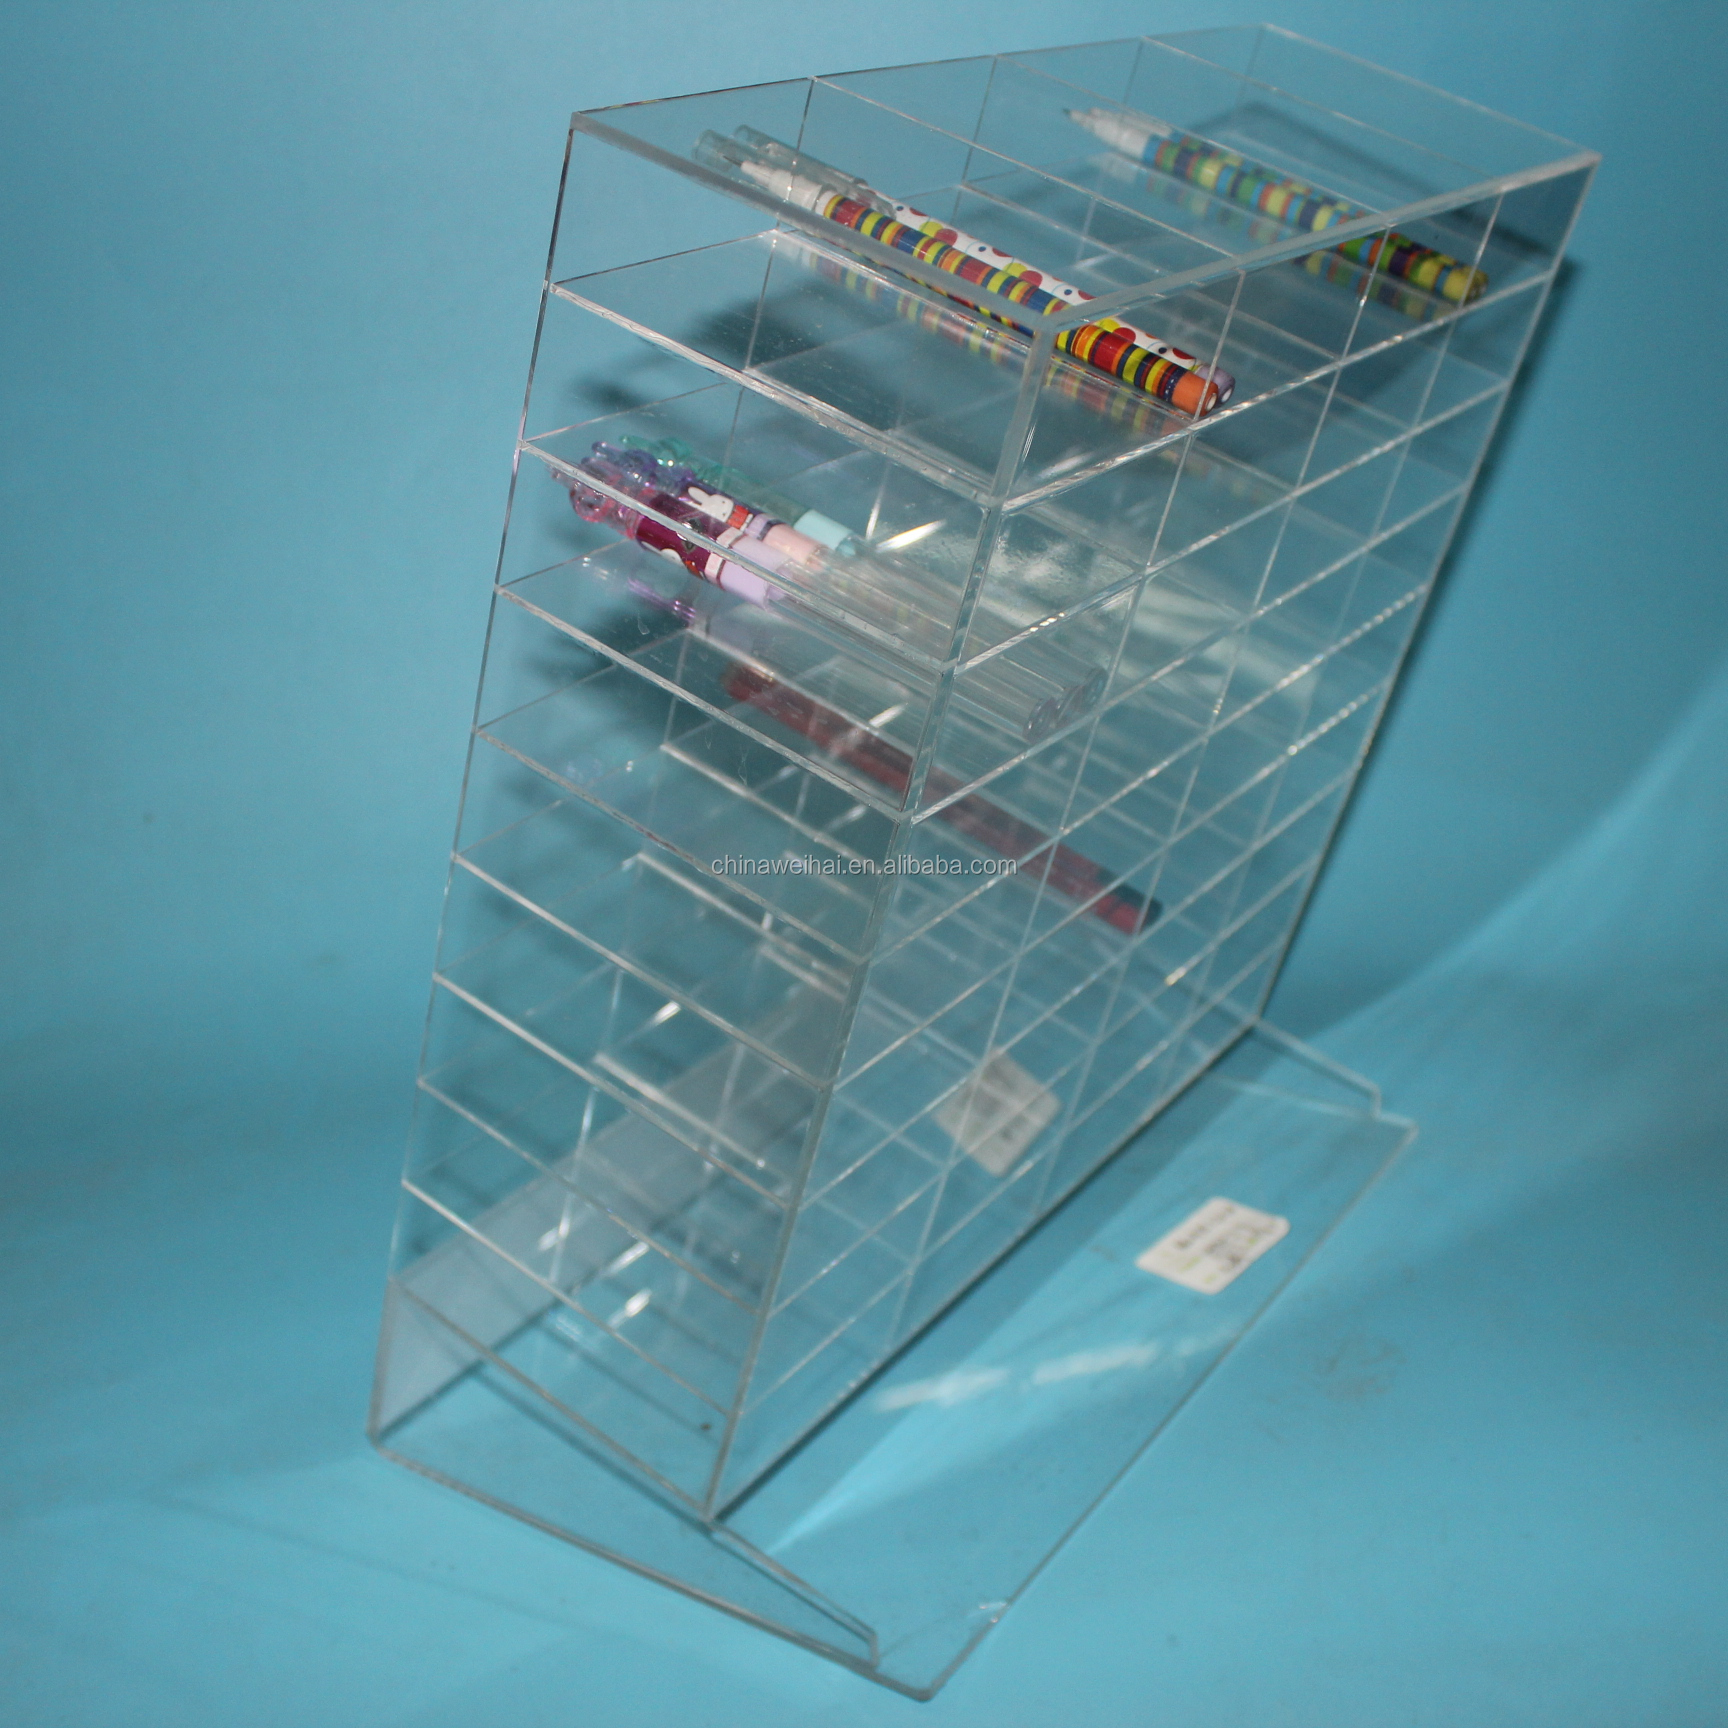 Clear Plexiglass Eye Liner Display Stand